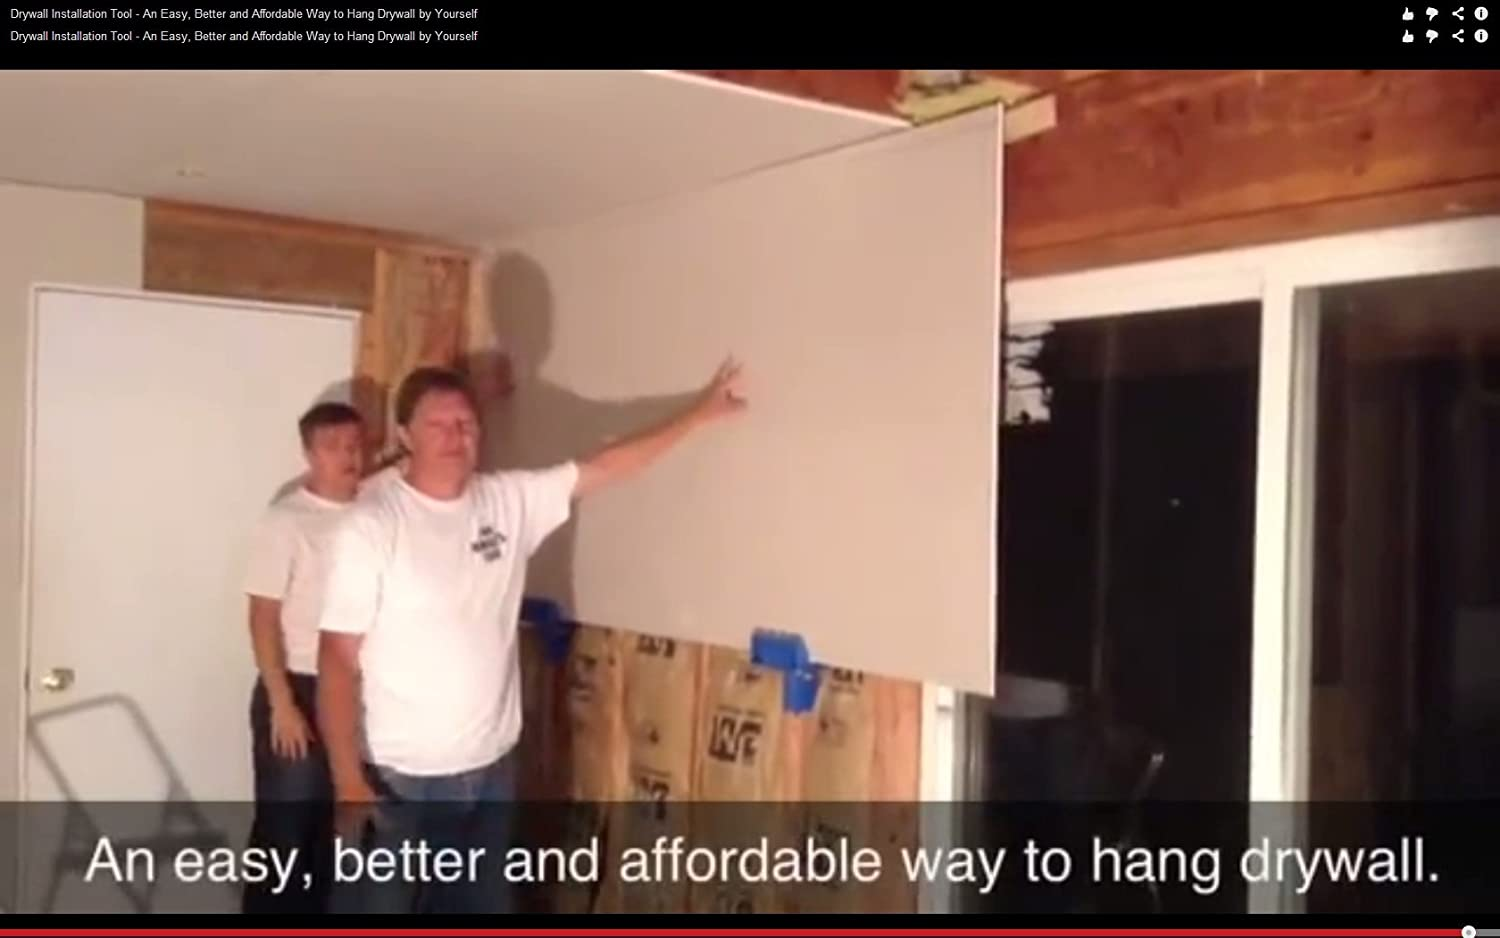 How to hang drywall on walls - How To Hang Drywall On Walls 10